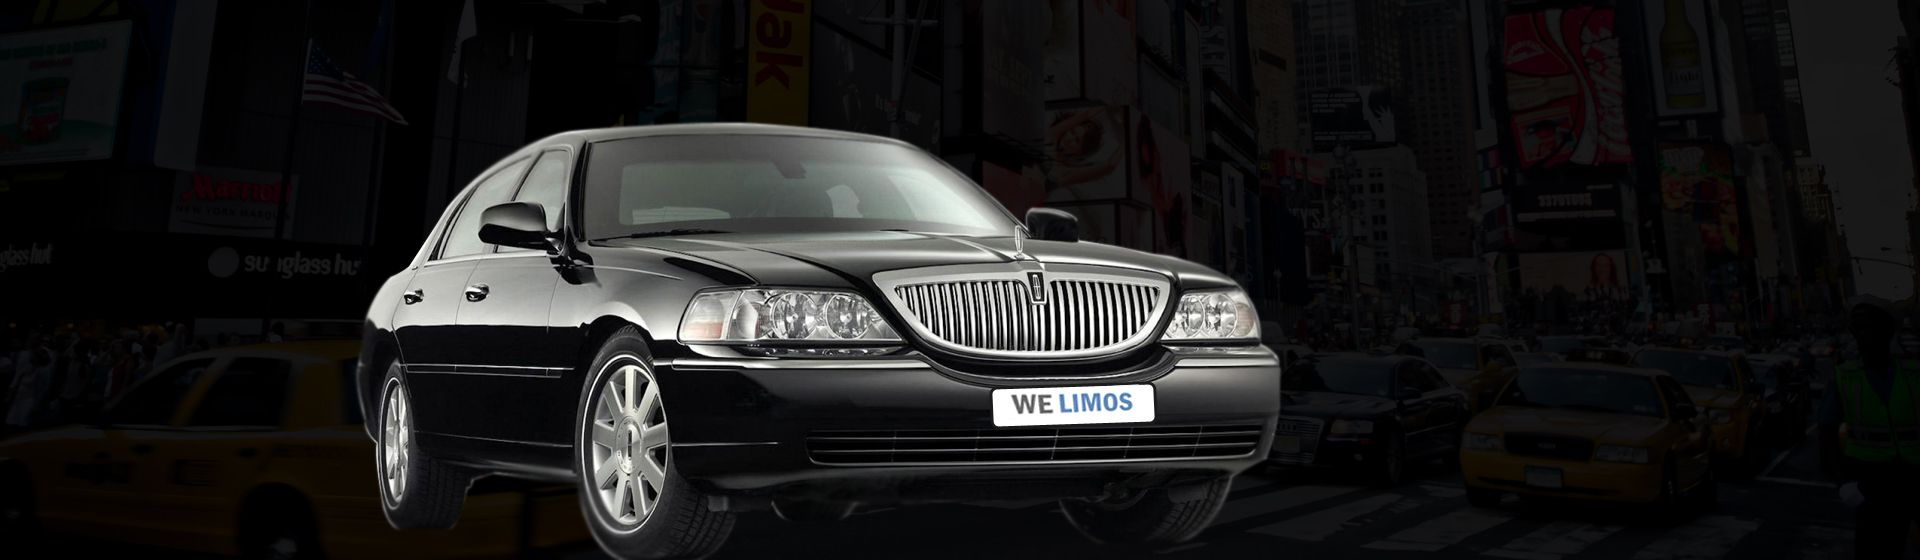 We Limo And Car Service Provides Trustworthy Luxury Limousine Rental Services In Long Branch New Jersey And A Limousine Rental Limousine Traveling By Yourself